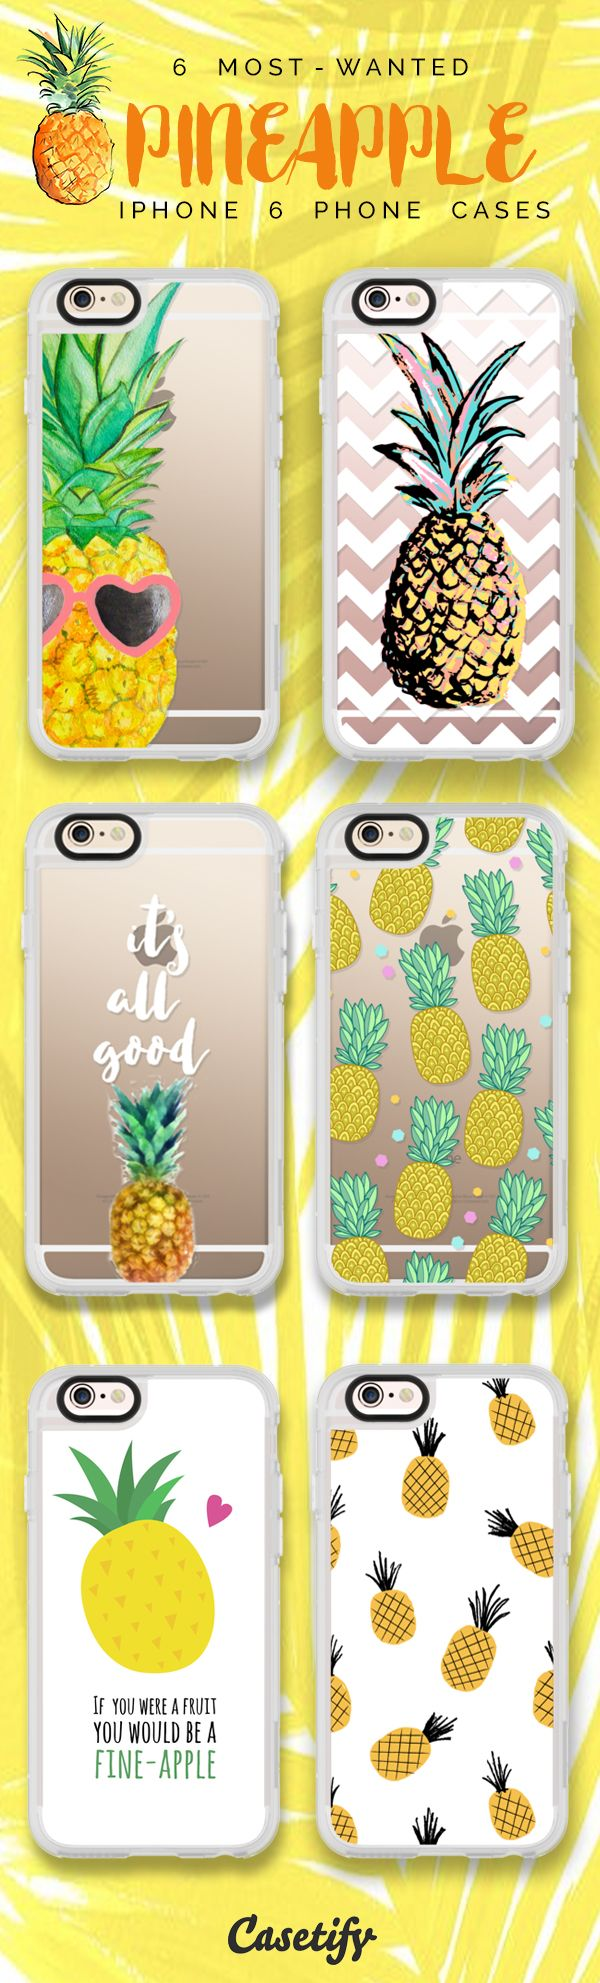 Top 6 Pineapple iPhone 6 protective phone case designs | Click through to see more iPhone phone case idea >>> https://www.casetify.com/collections/iphone-6s-pineapple-cases/?device=iphone-6s #fruit | @casetify